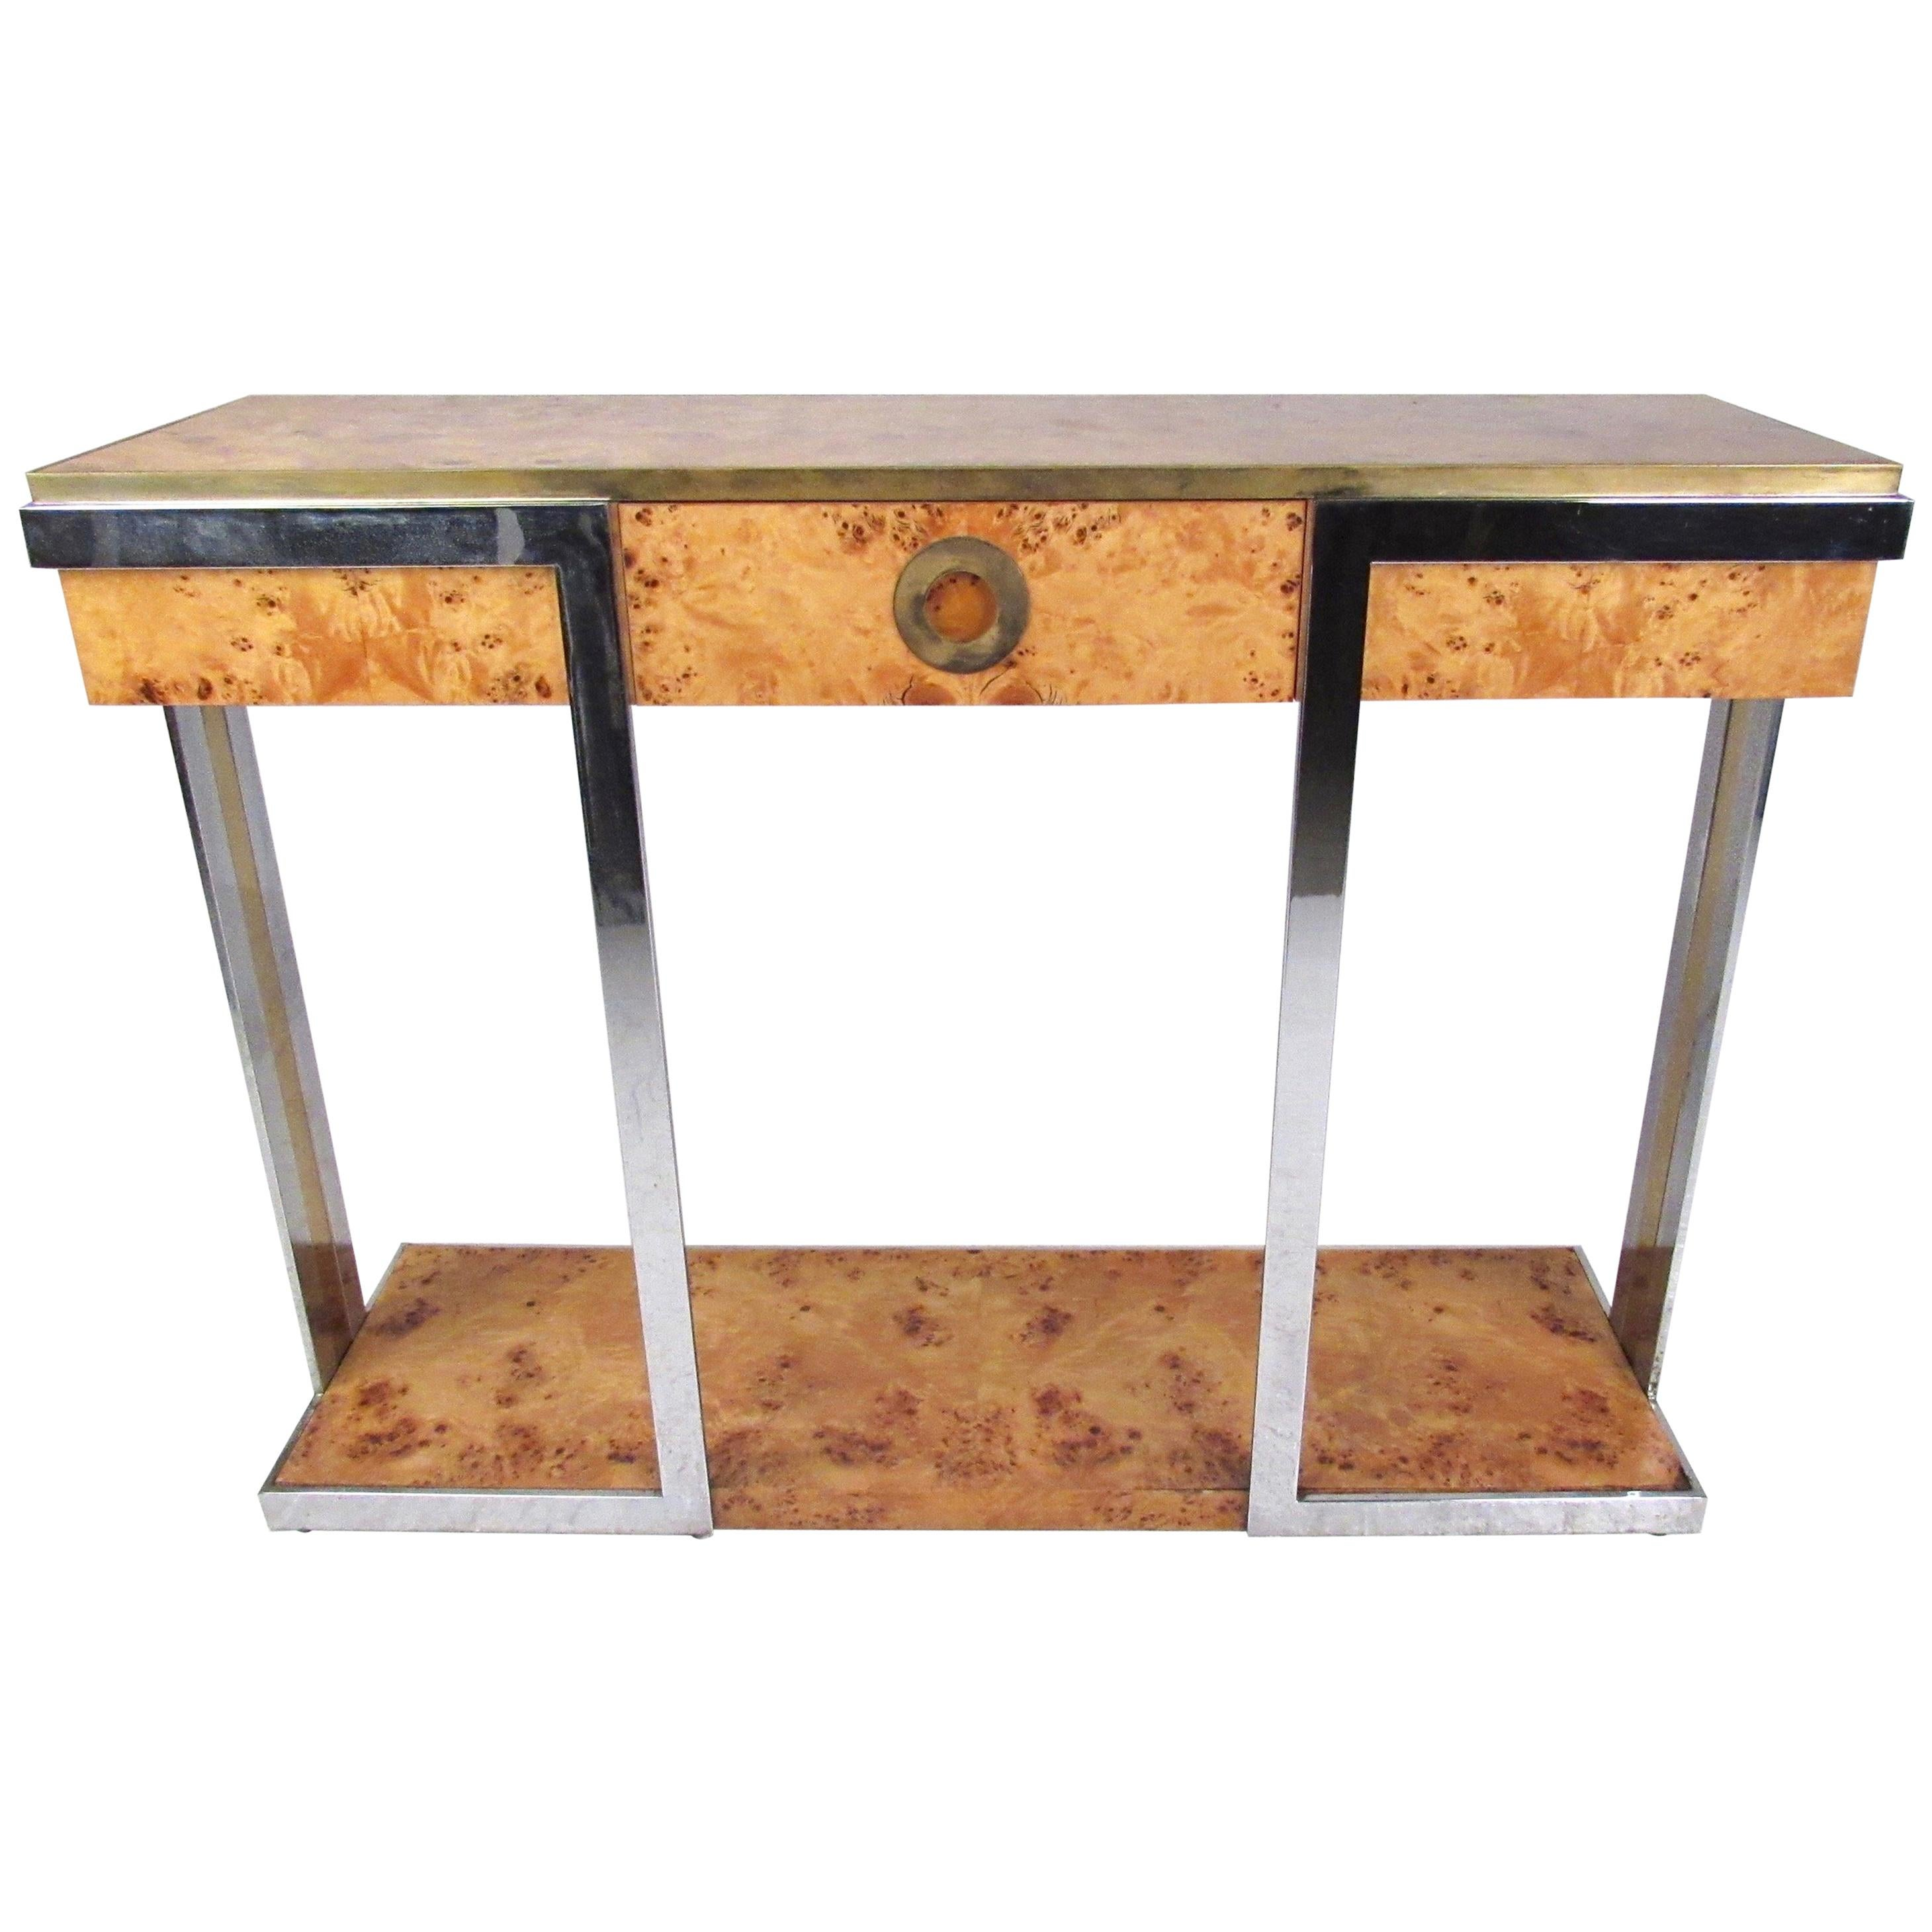 Willy Rizzo Console Table in Burlwood and Brass by Mario Sabot